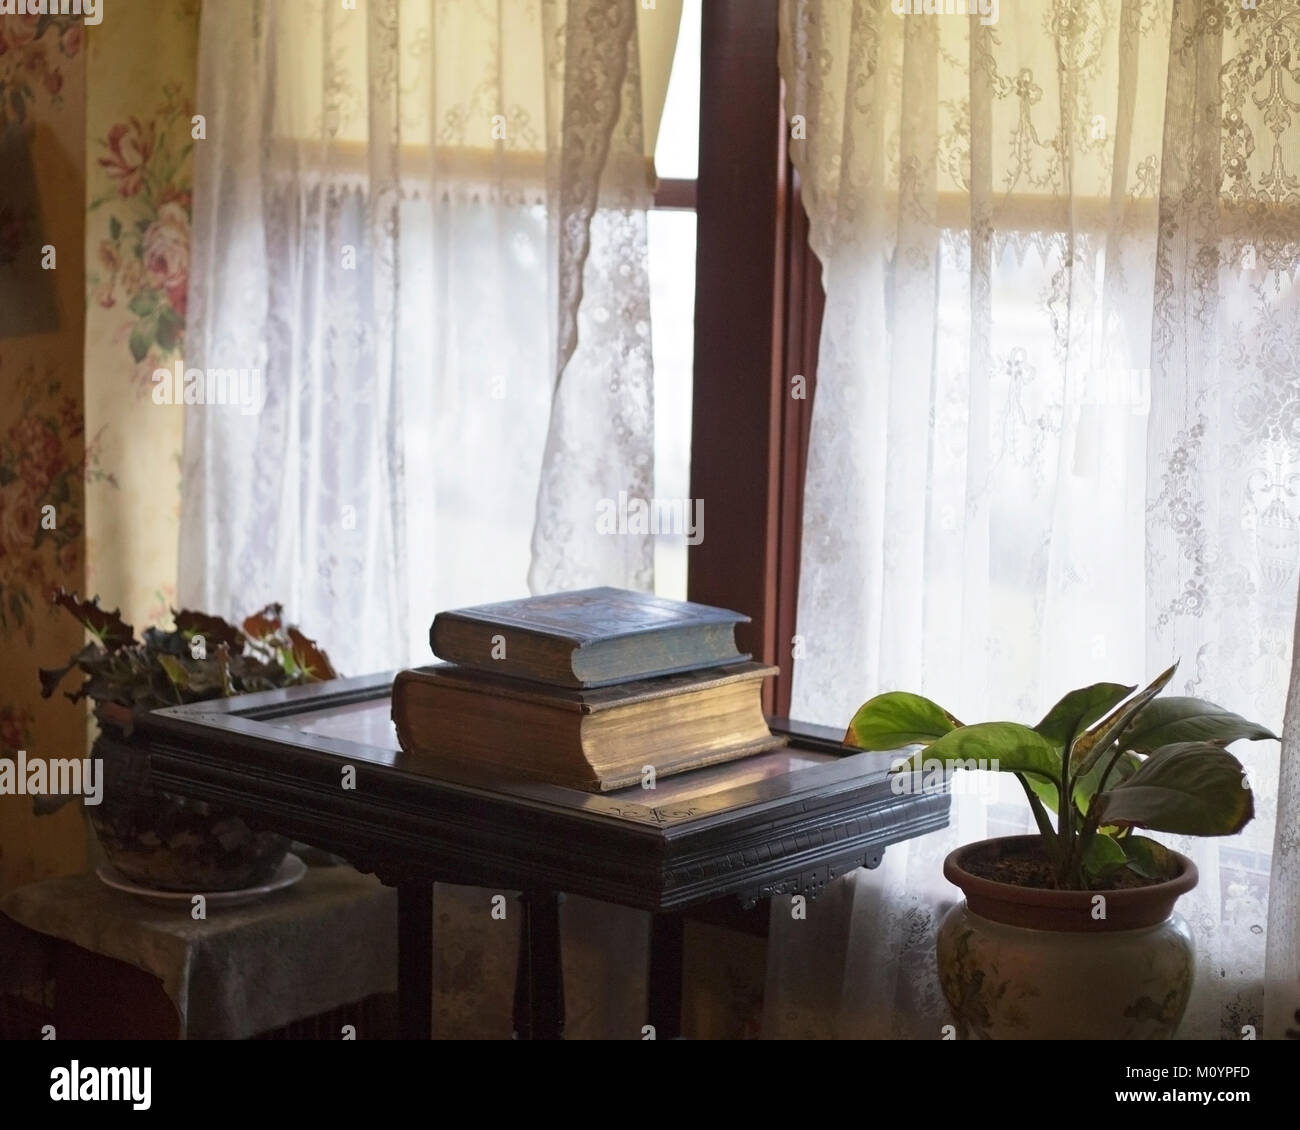 Antique books in Thorpe House interior, Victorian house built in 1886 now restored in Heritage Park Historical Village - Stock Image